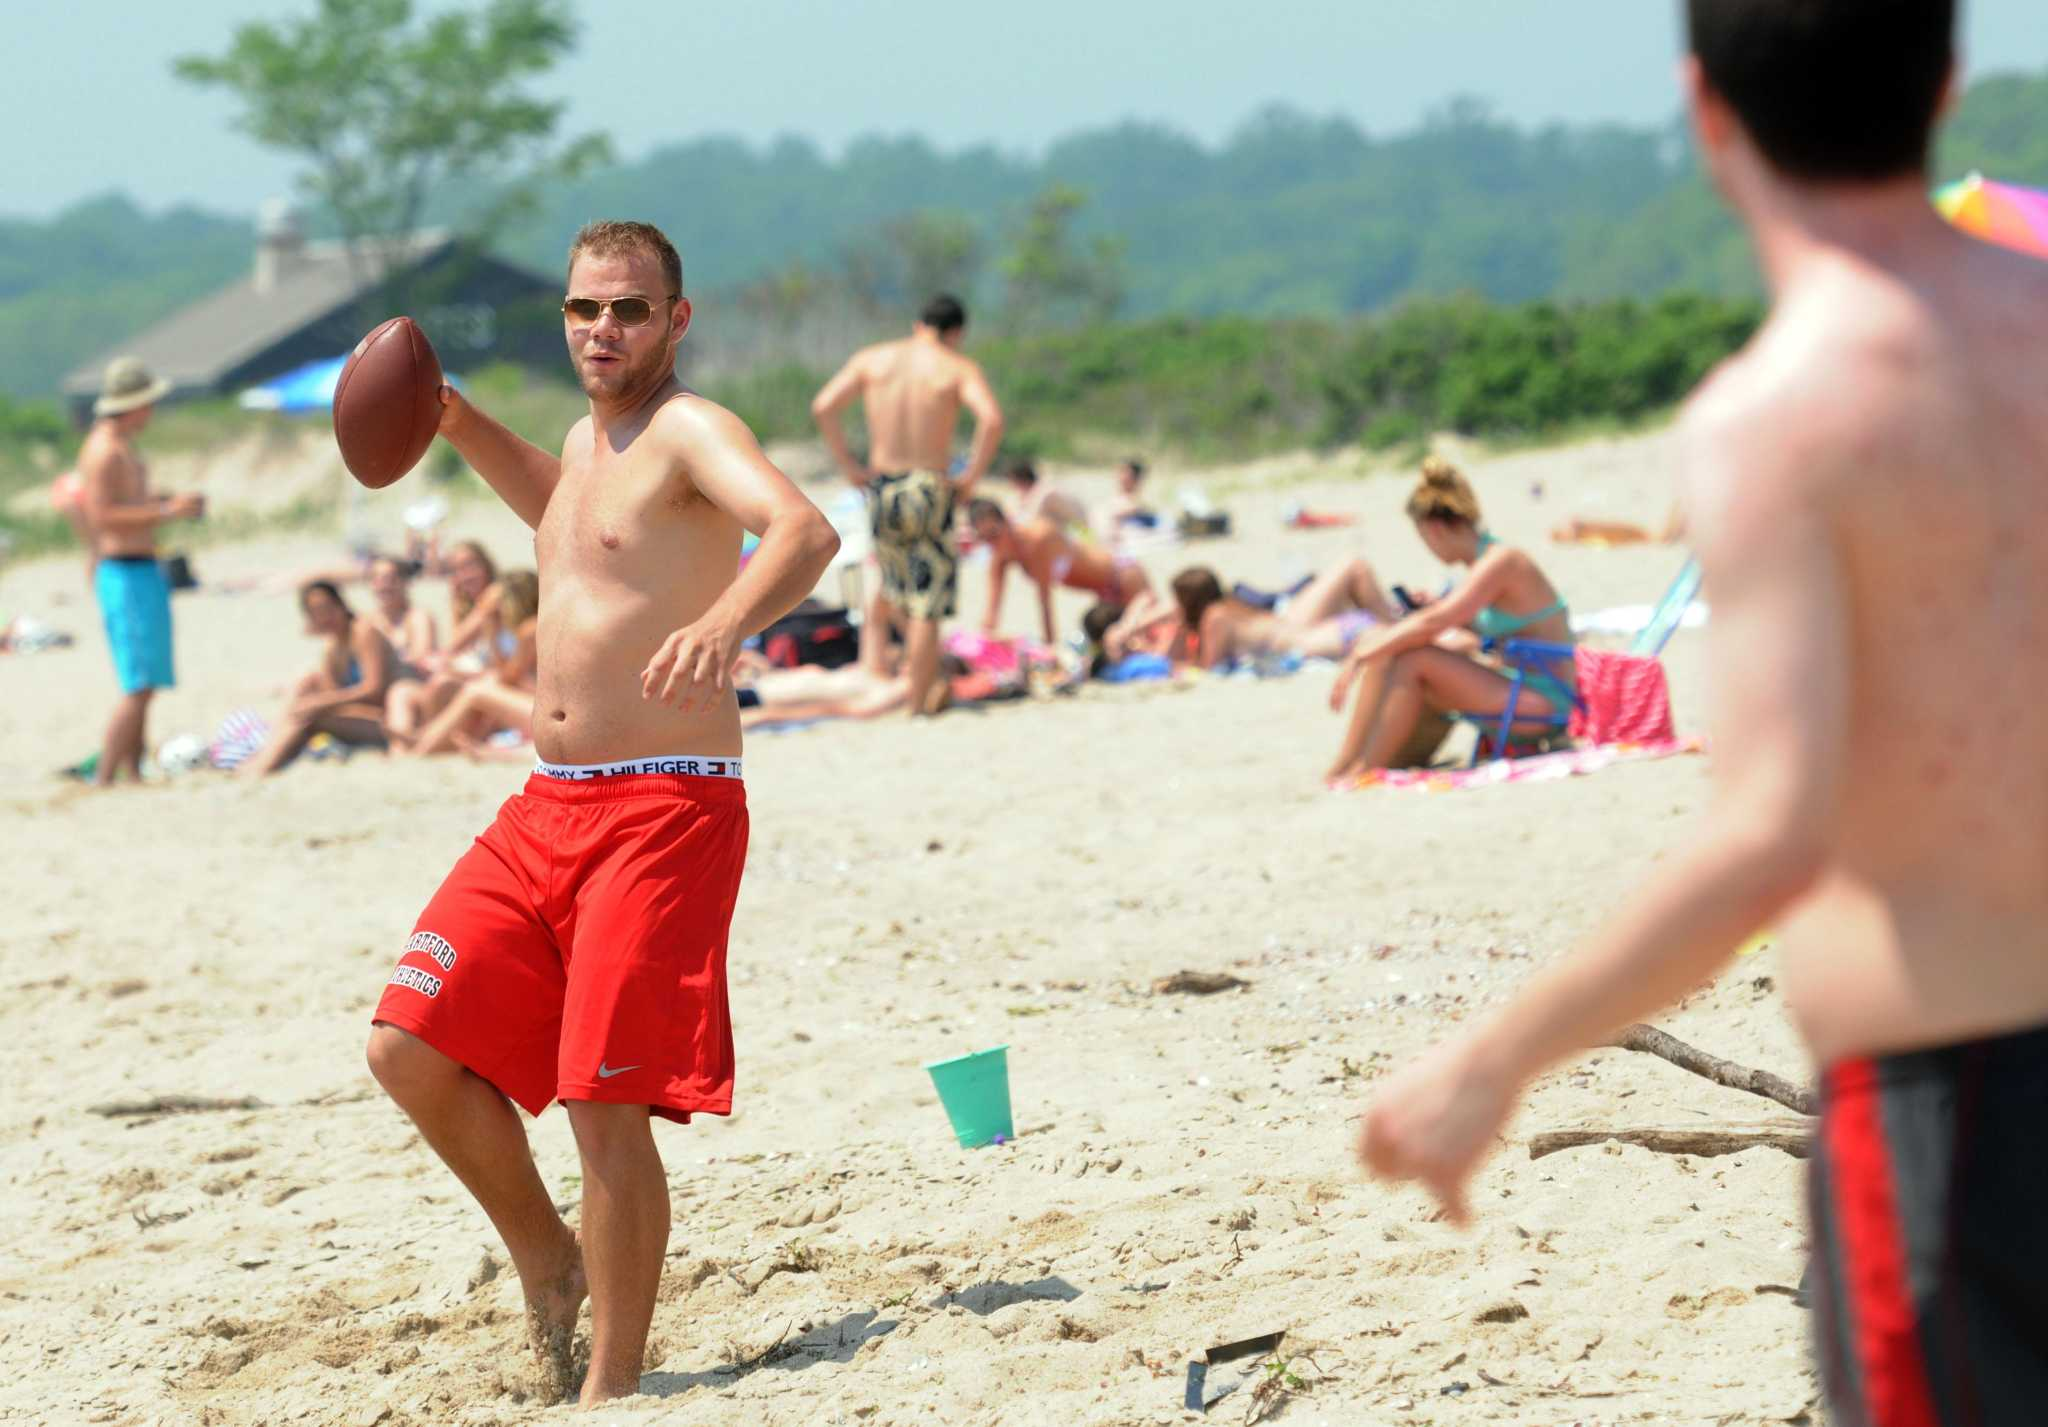 Want to hit the beach this weekend? Get there early